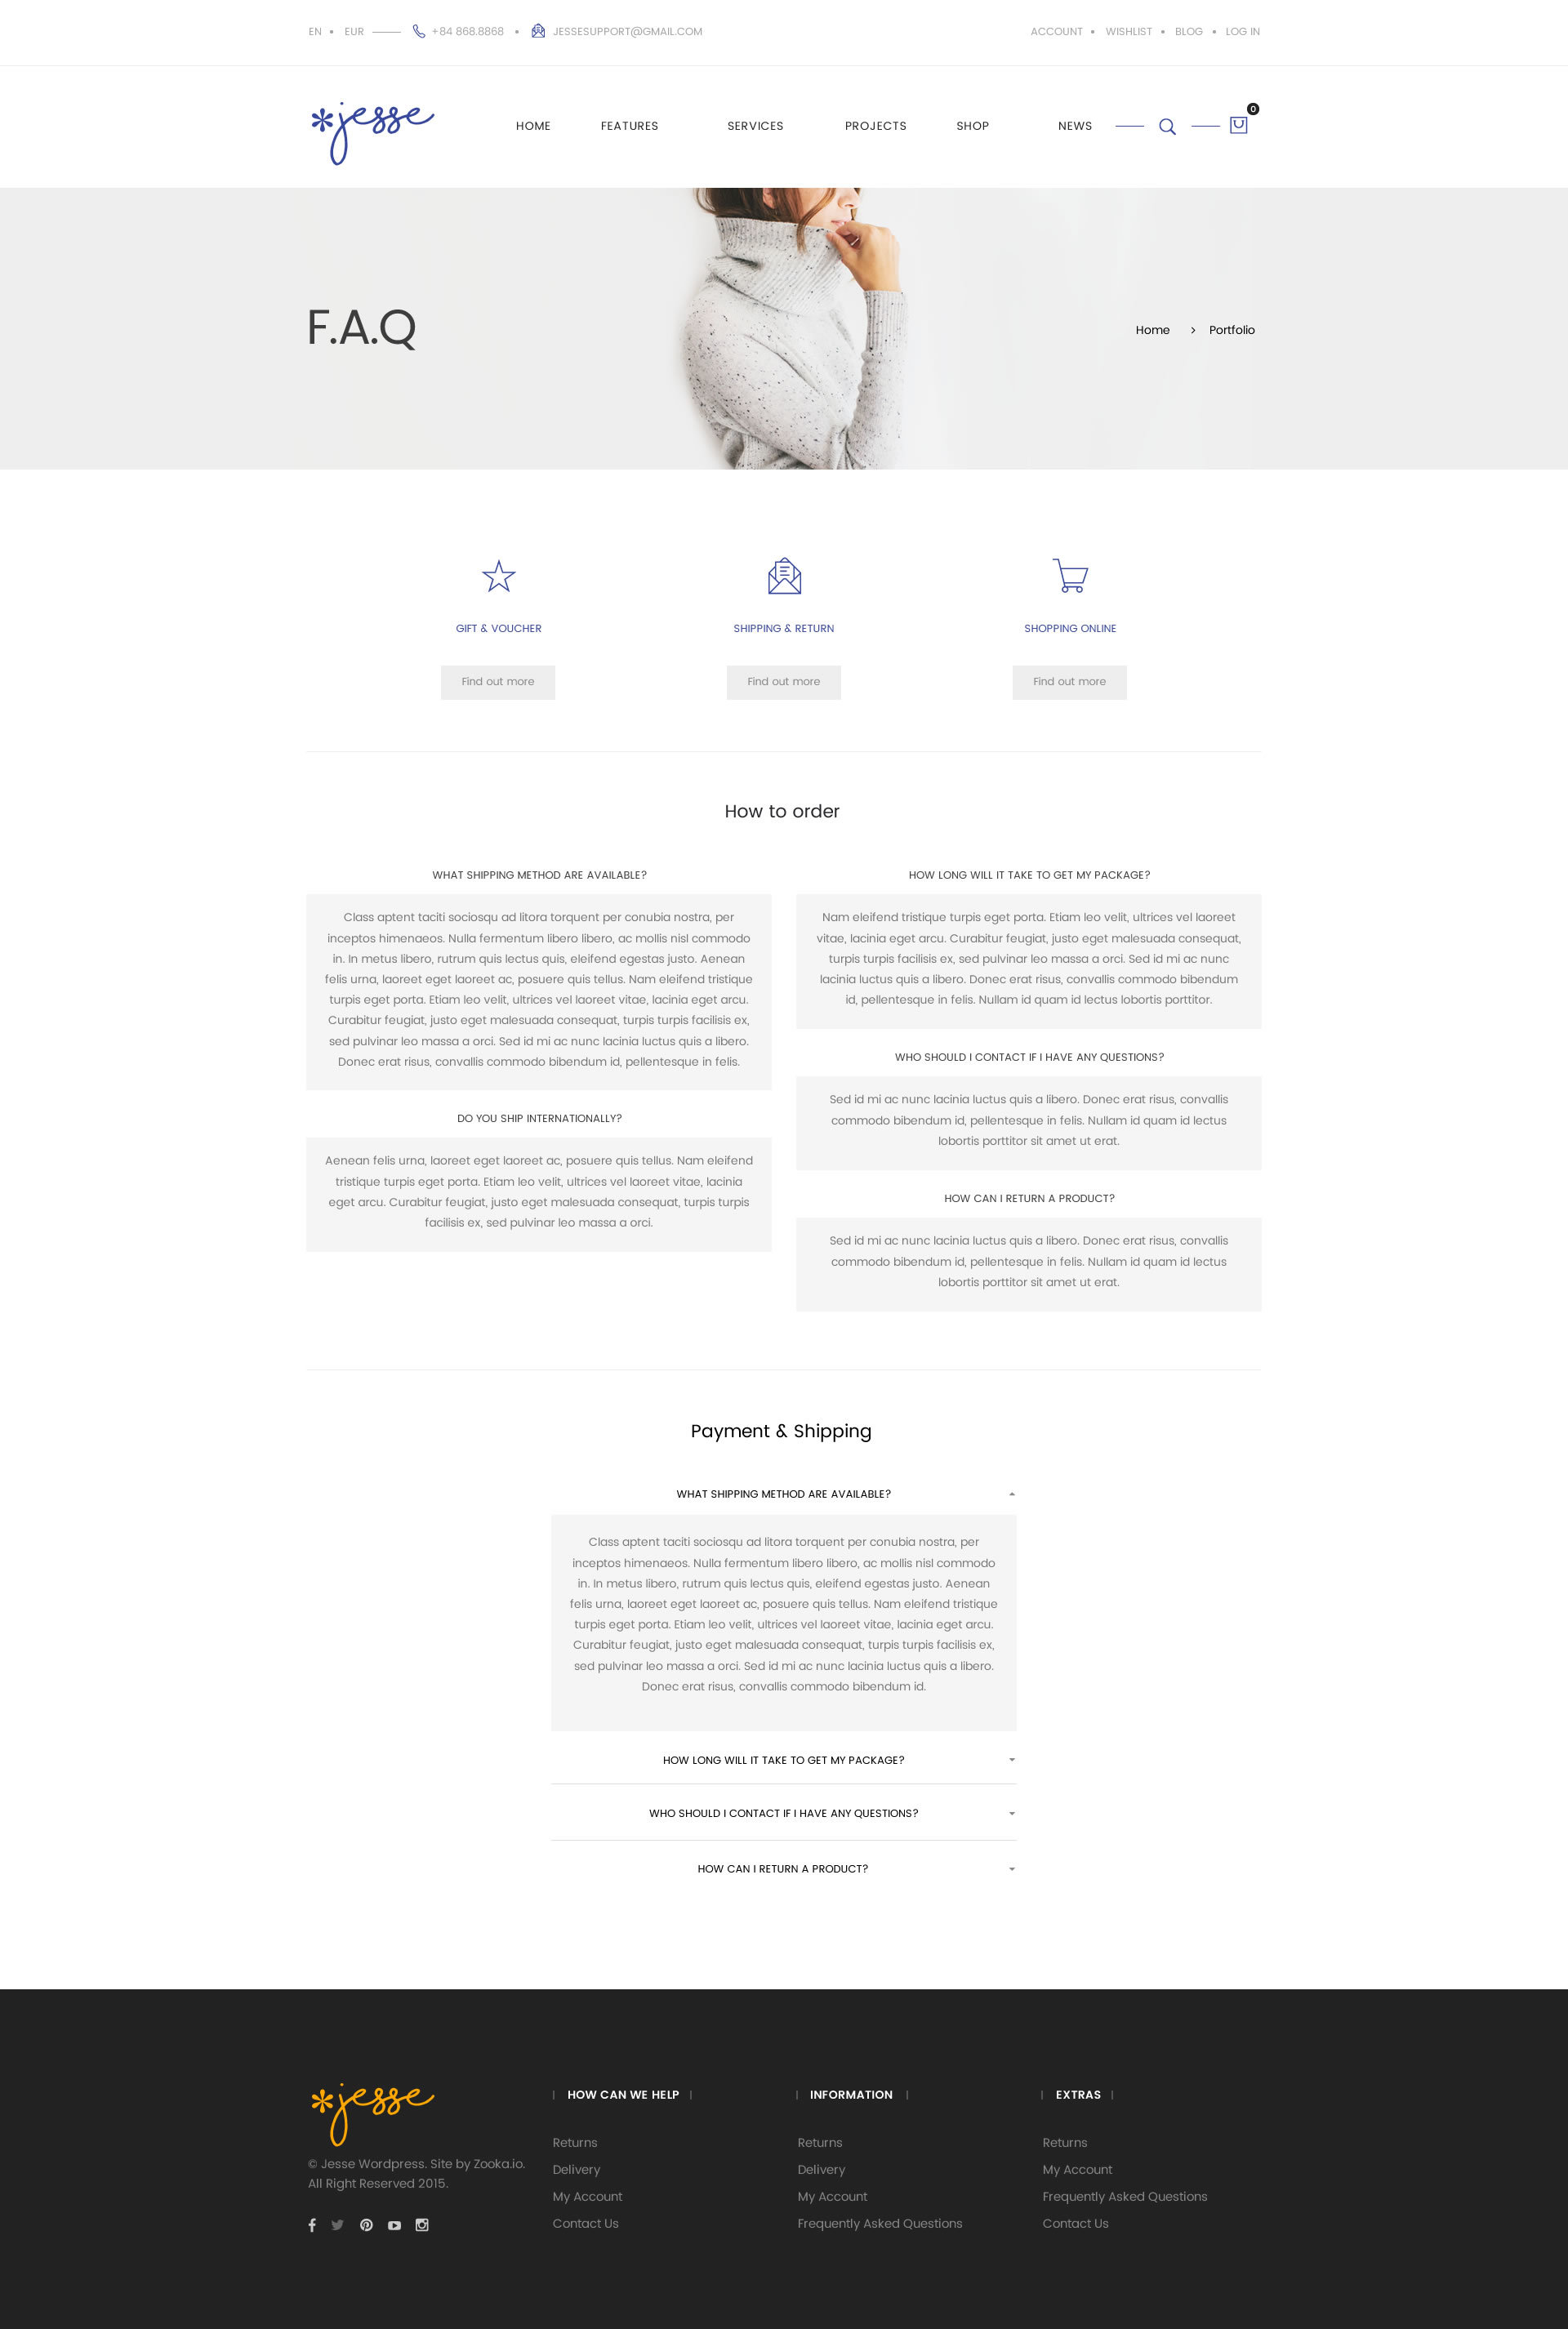 Lovely 1 Page Resume Format For Freshers Thin 1 Year Experienced Java Resume Clean 1 Year Experienced Software Developer Resume Sample 10 Steps Writing Resume Old 10 Tips To Write A Good Resume Black1500 Claim Form Template Jesse   Modern Fashion E Commerce PSD Template By ThemeSun ..